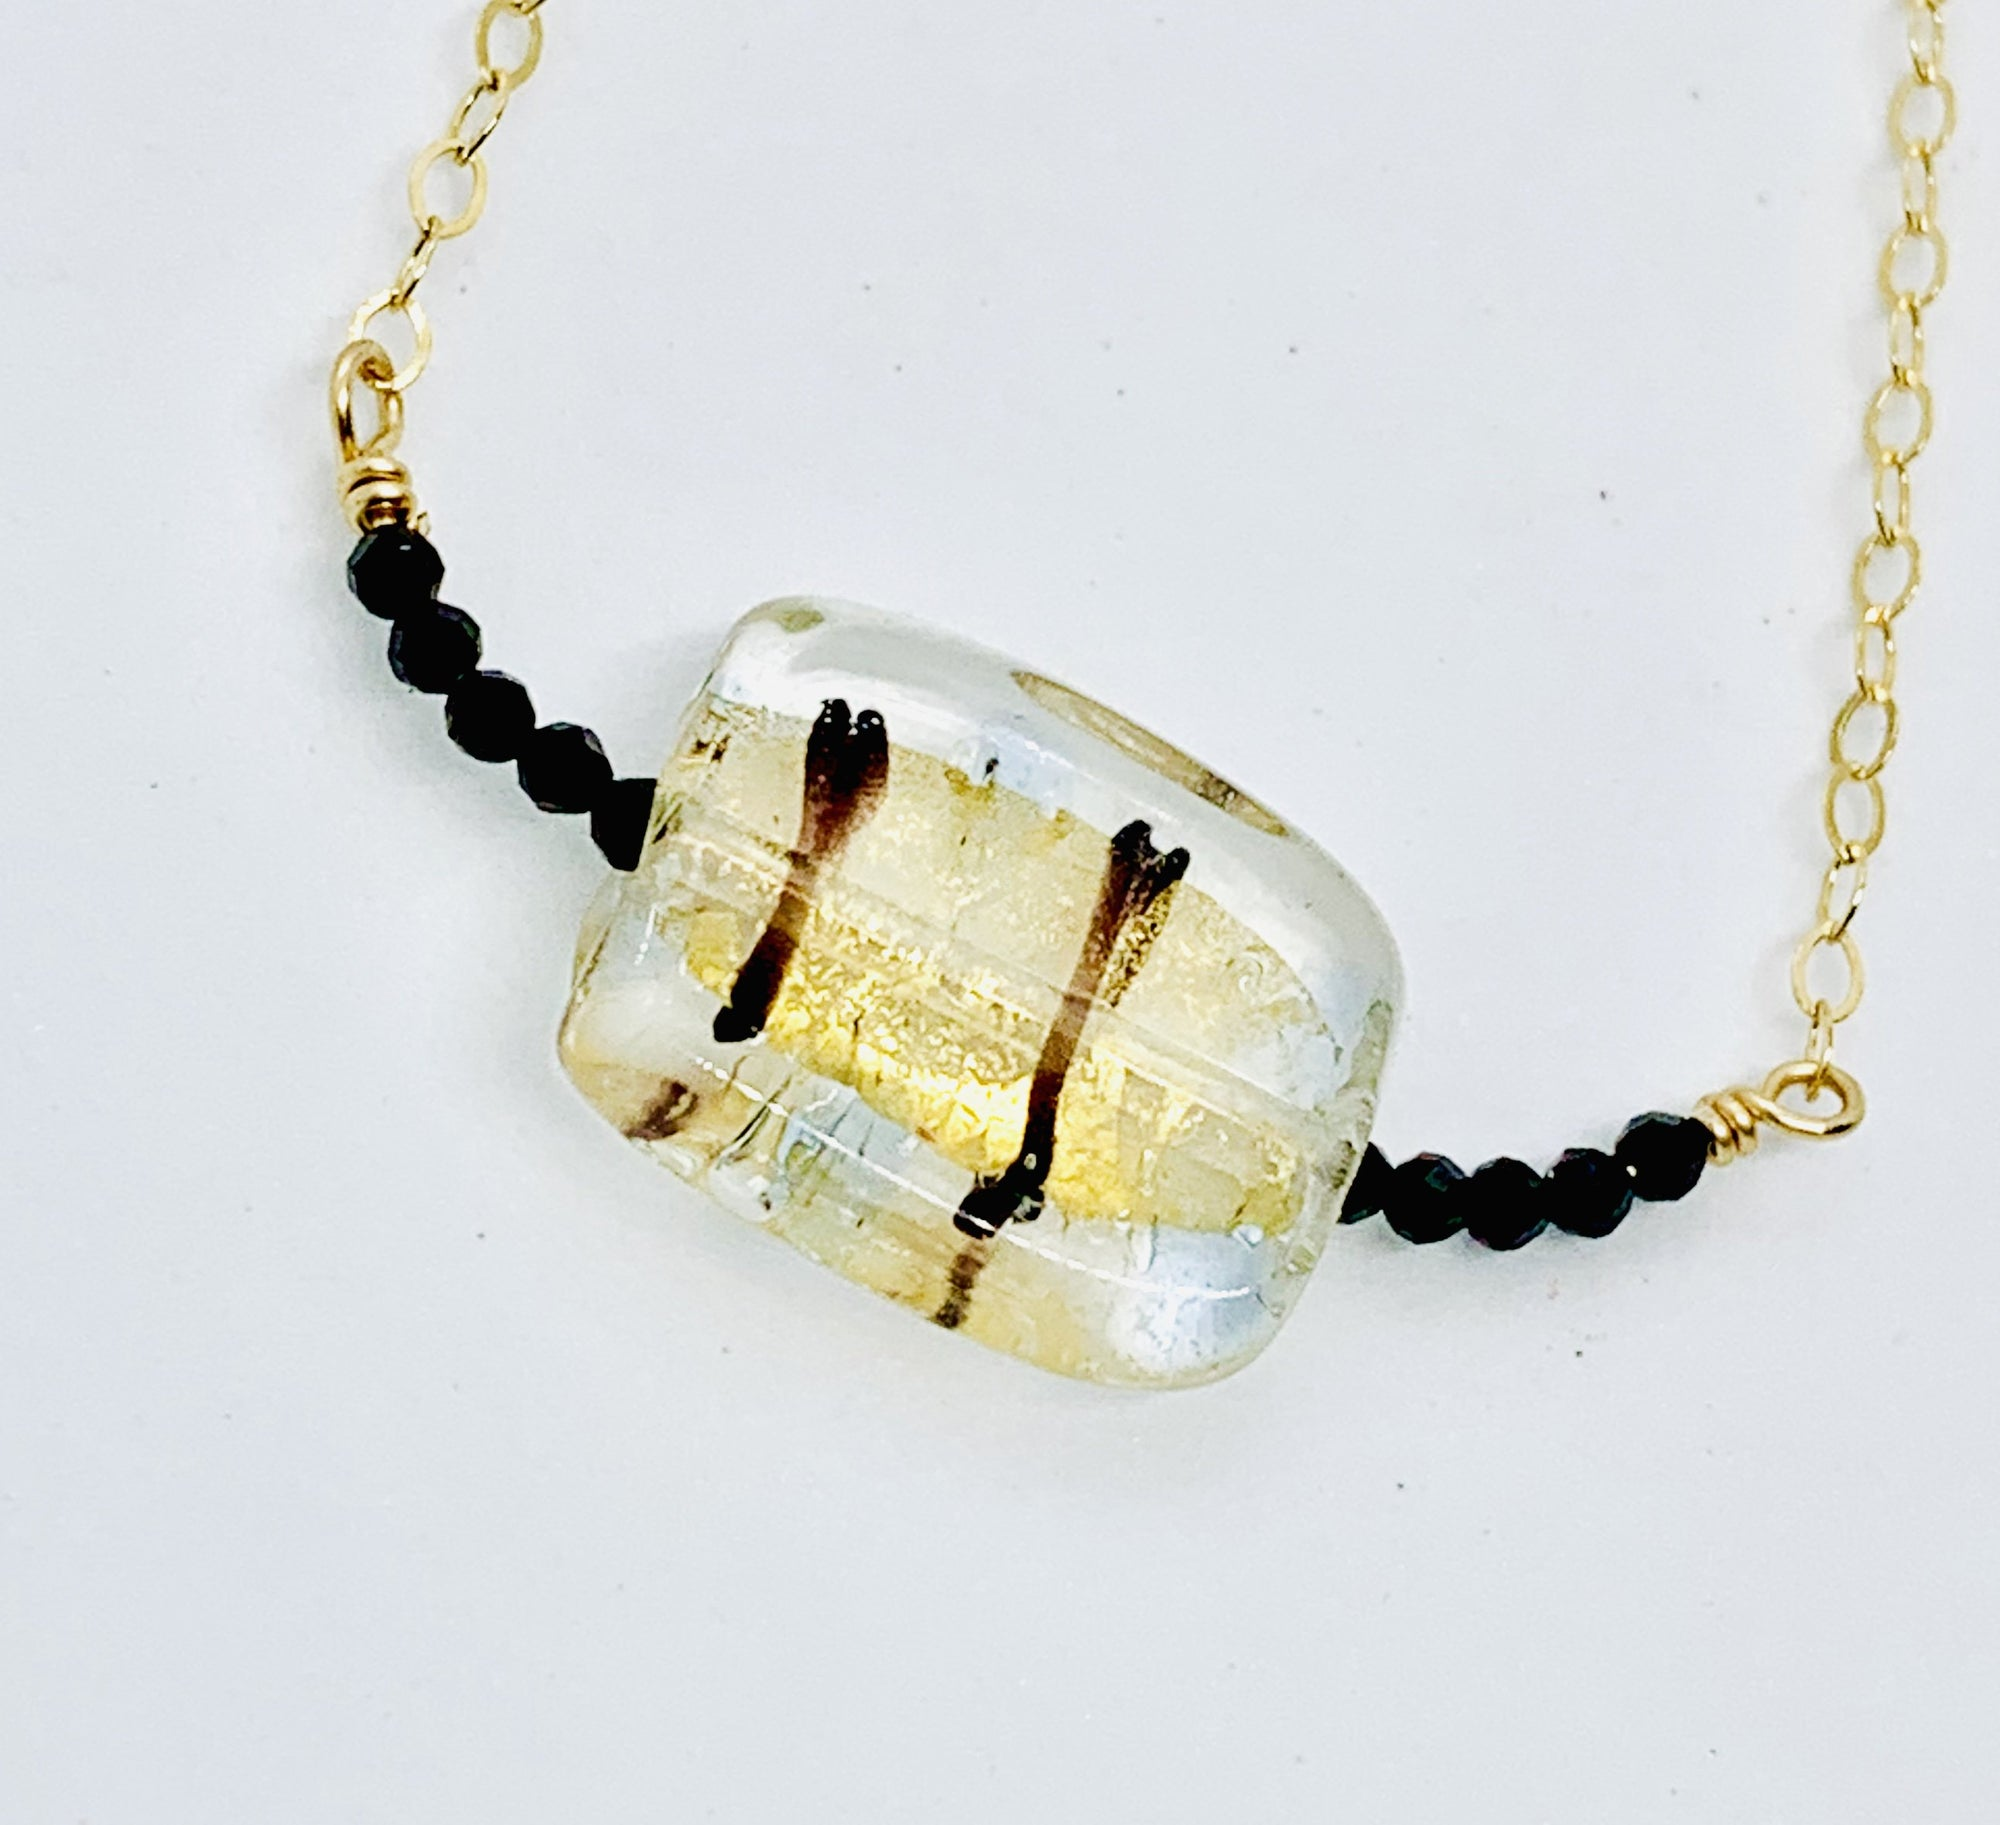 Gold Infused Glass Necklace